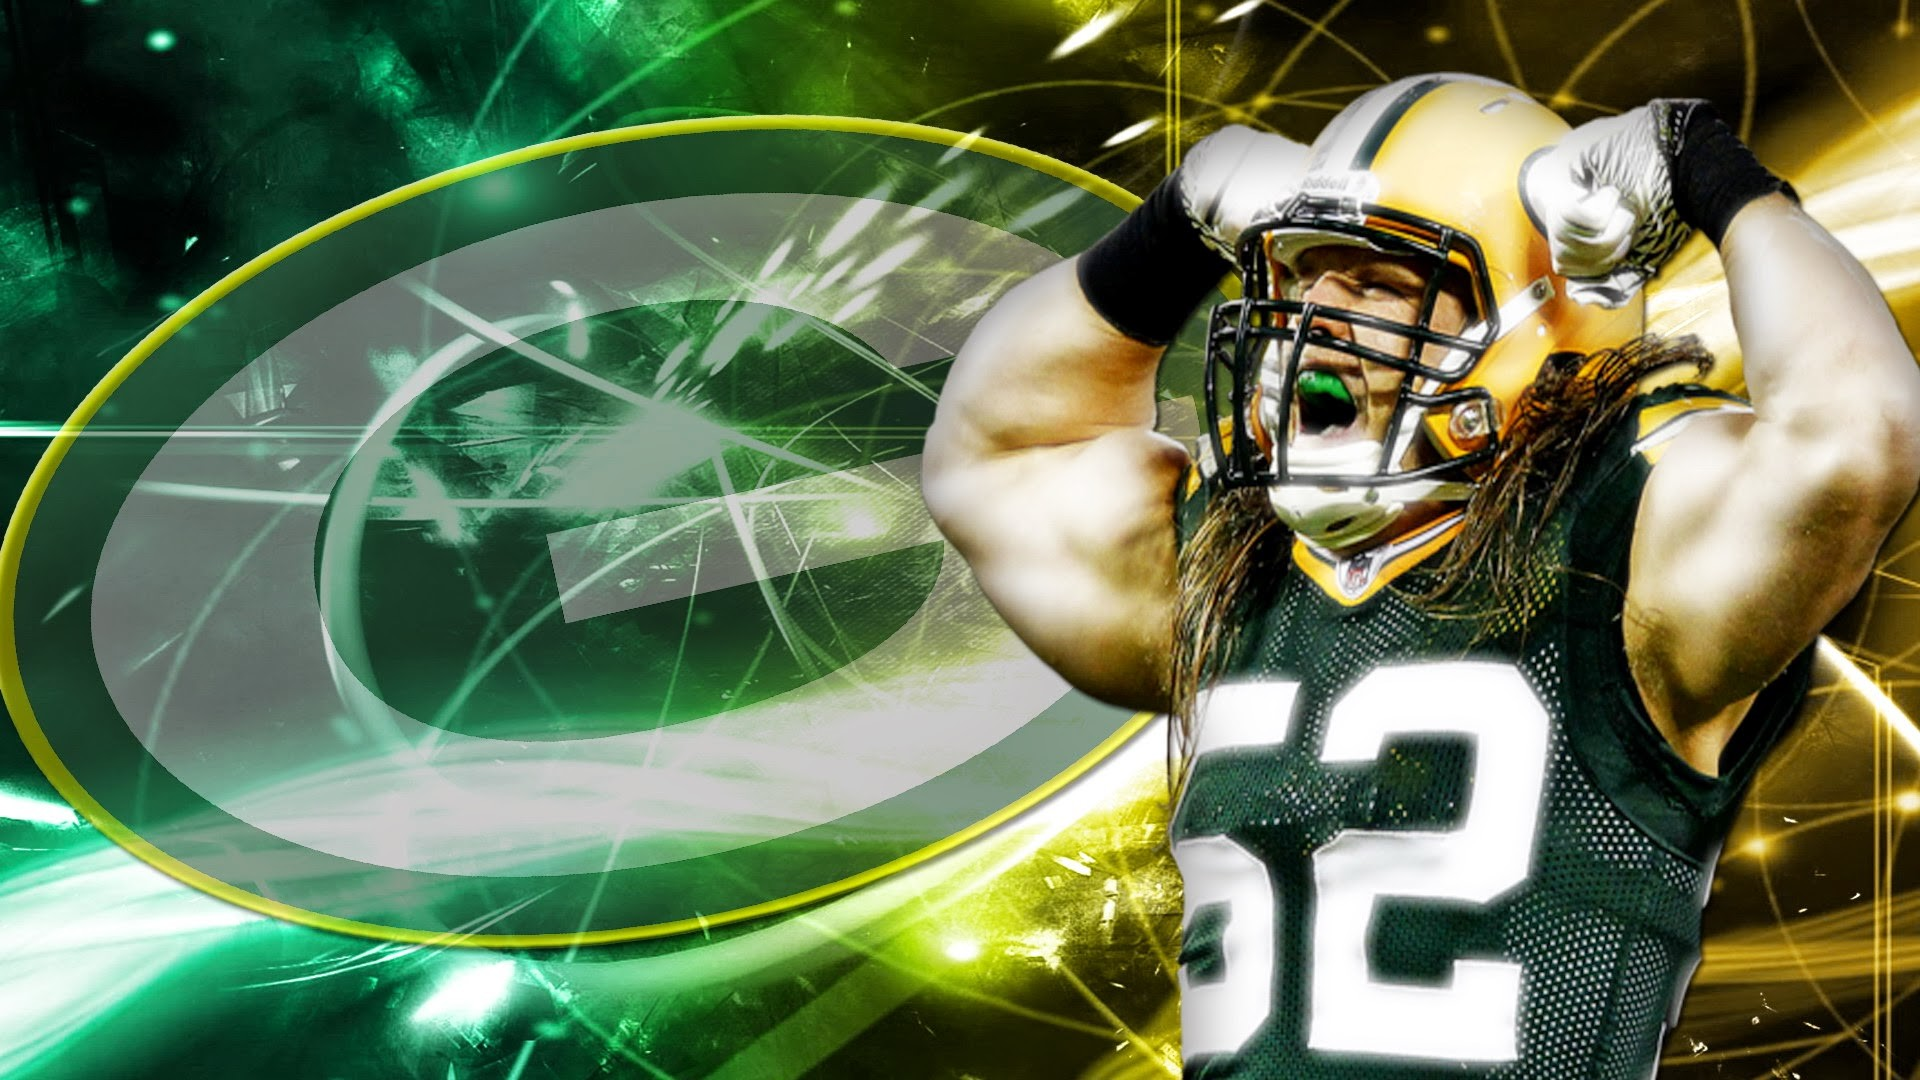 Green Bay Packer Wallpaper: Green Bay Packers Wallpaper Graphic (68+ Images